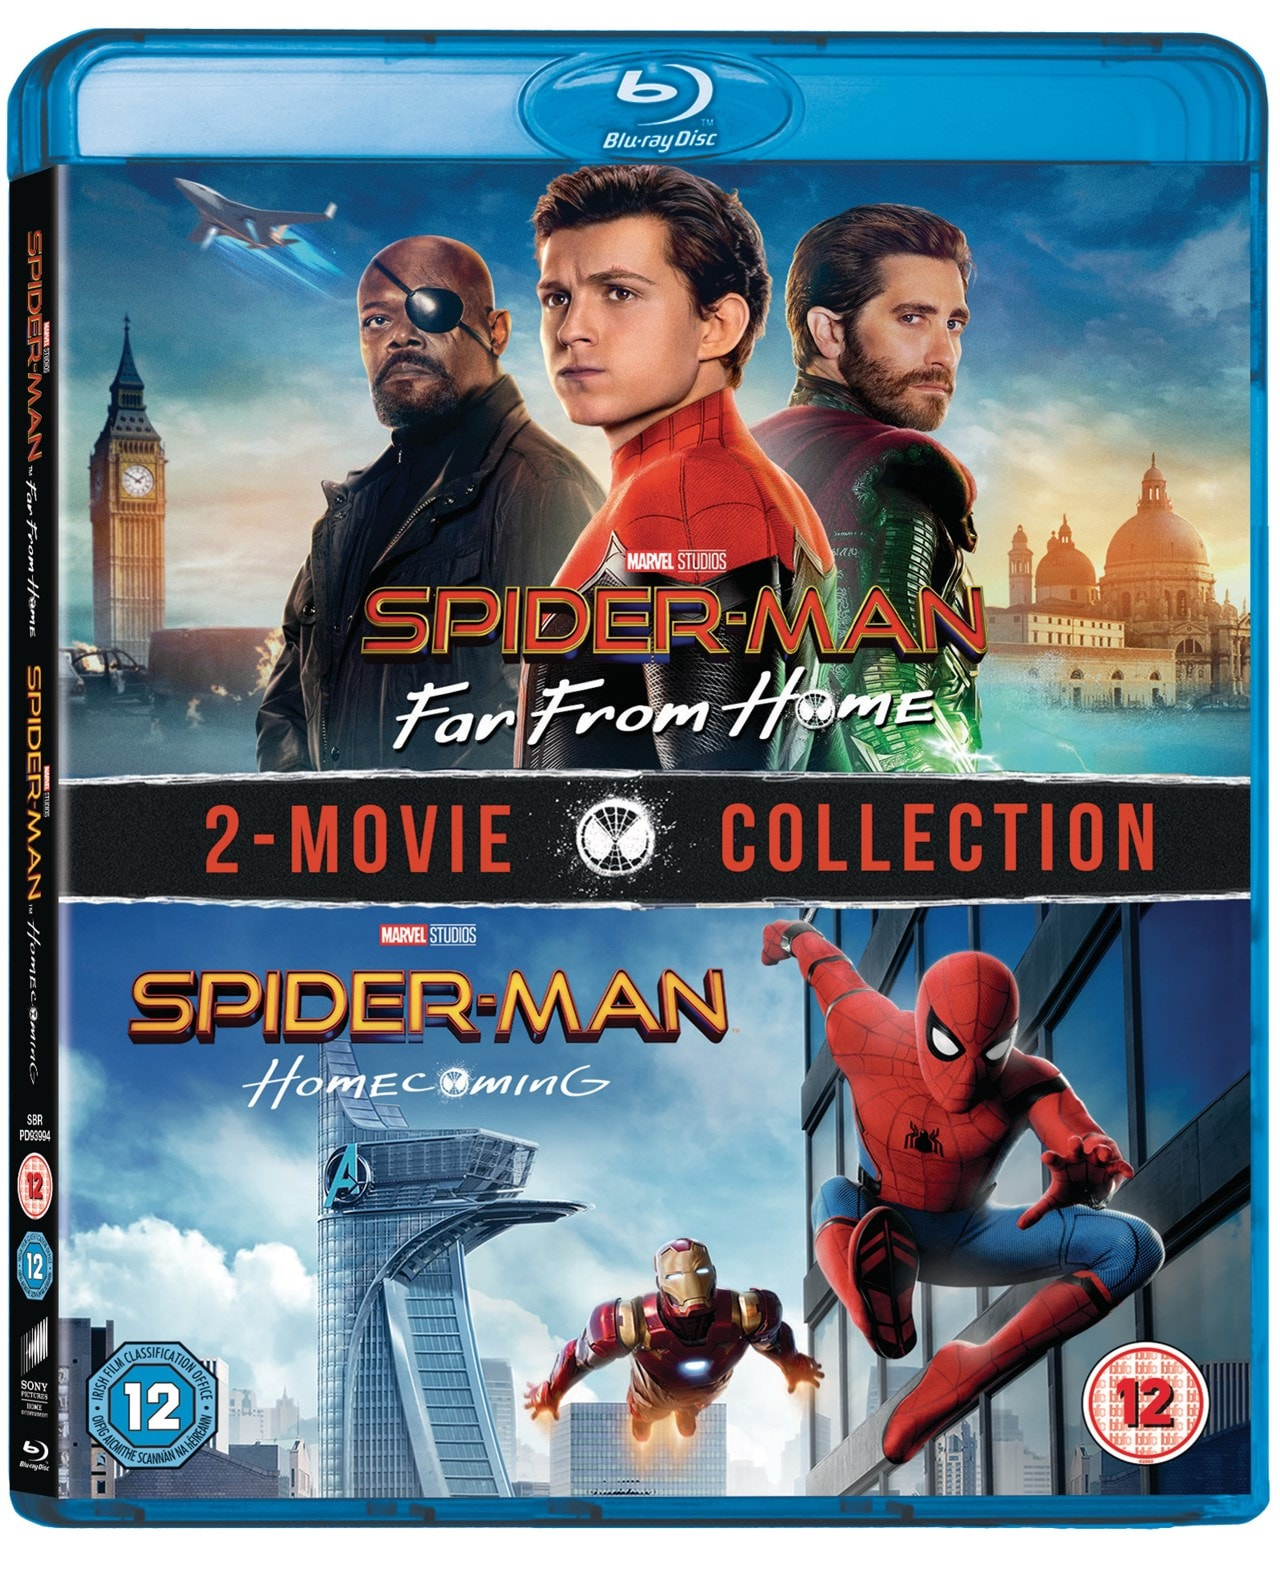 Spider-Man - Homecoming/Far from Home - 2